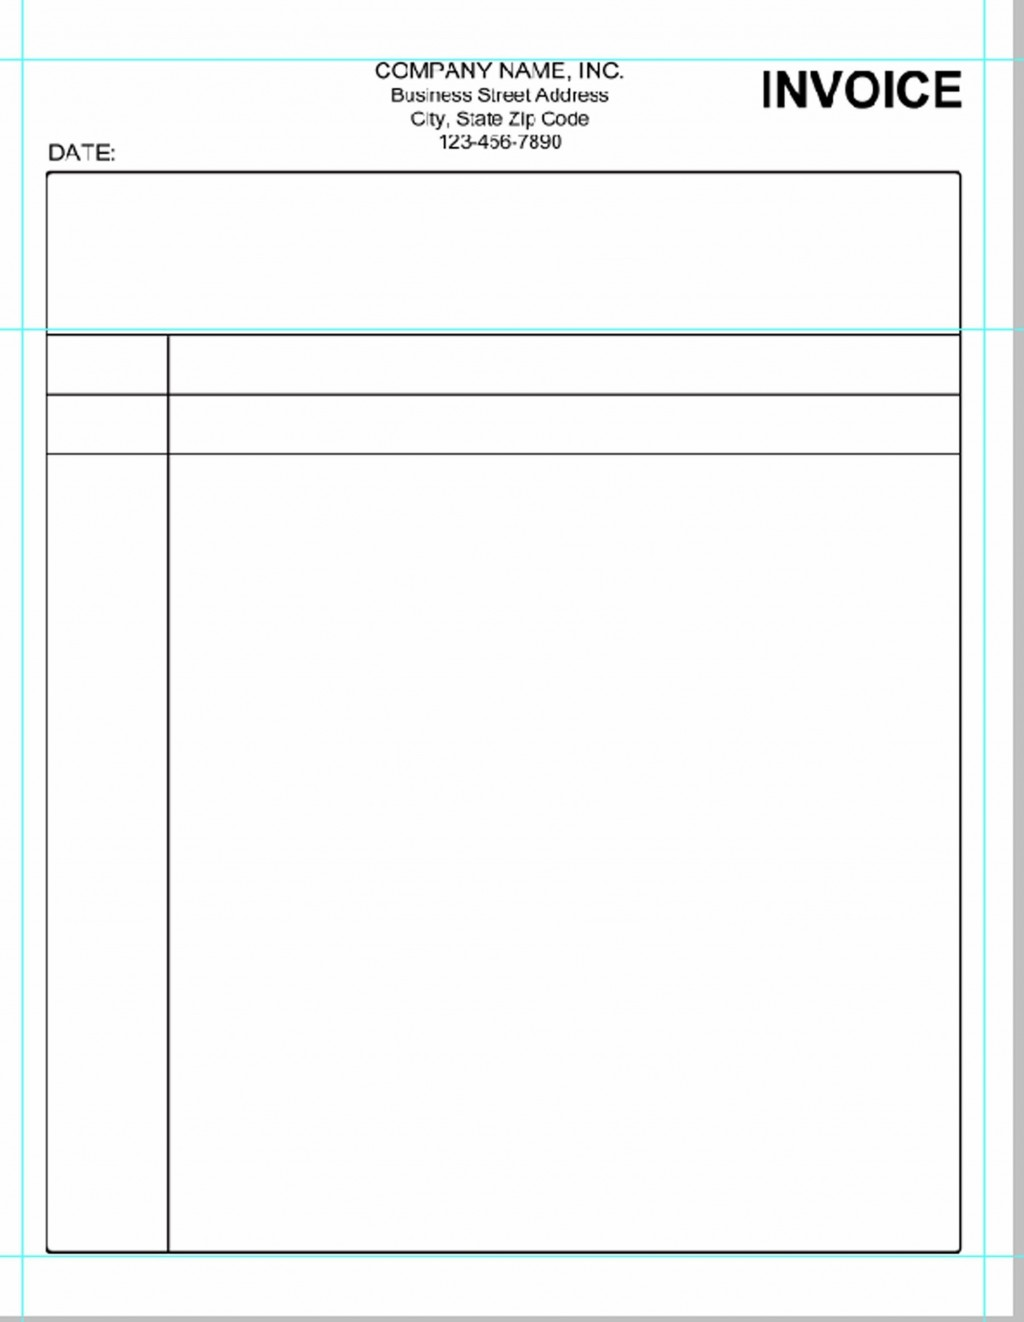 002 Formidable Receipt Template Microsoft Word High Definition  Invoice Free Money BlankLarge